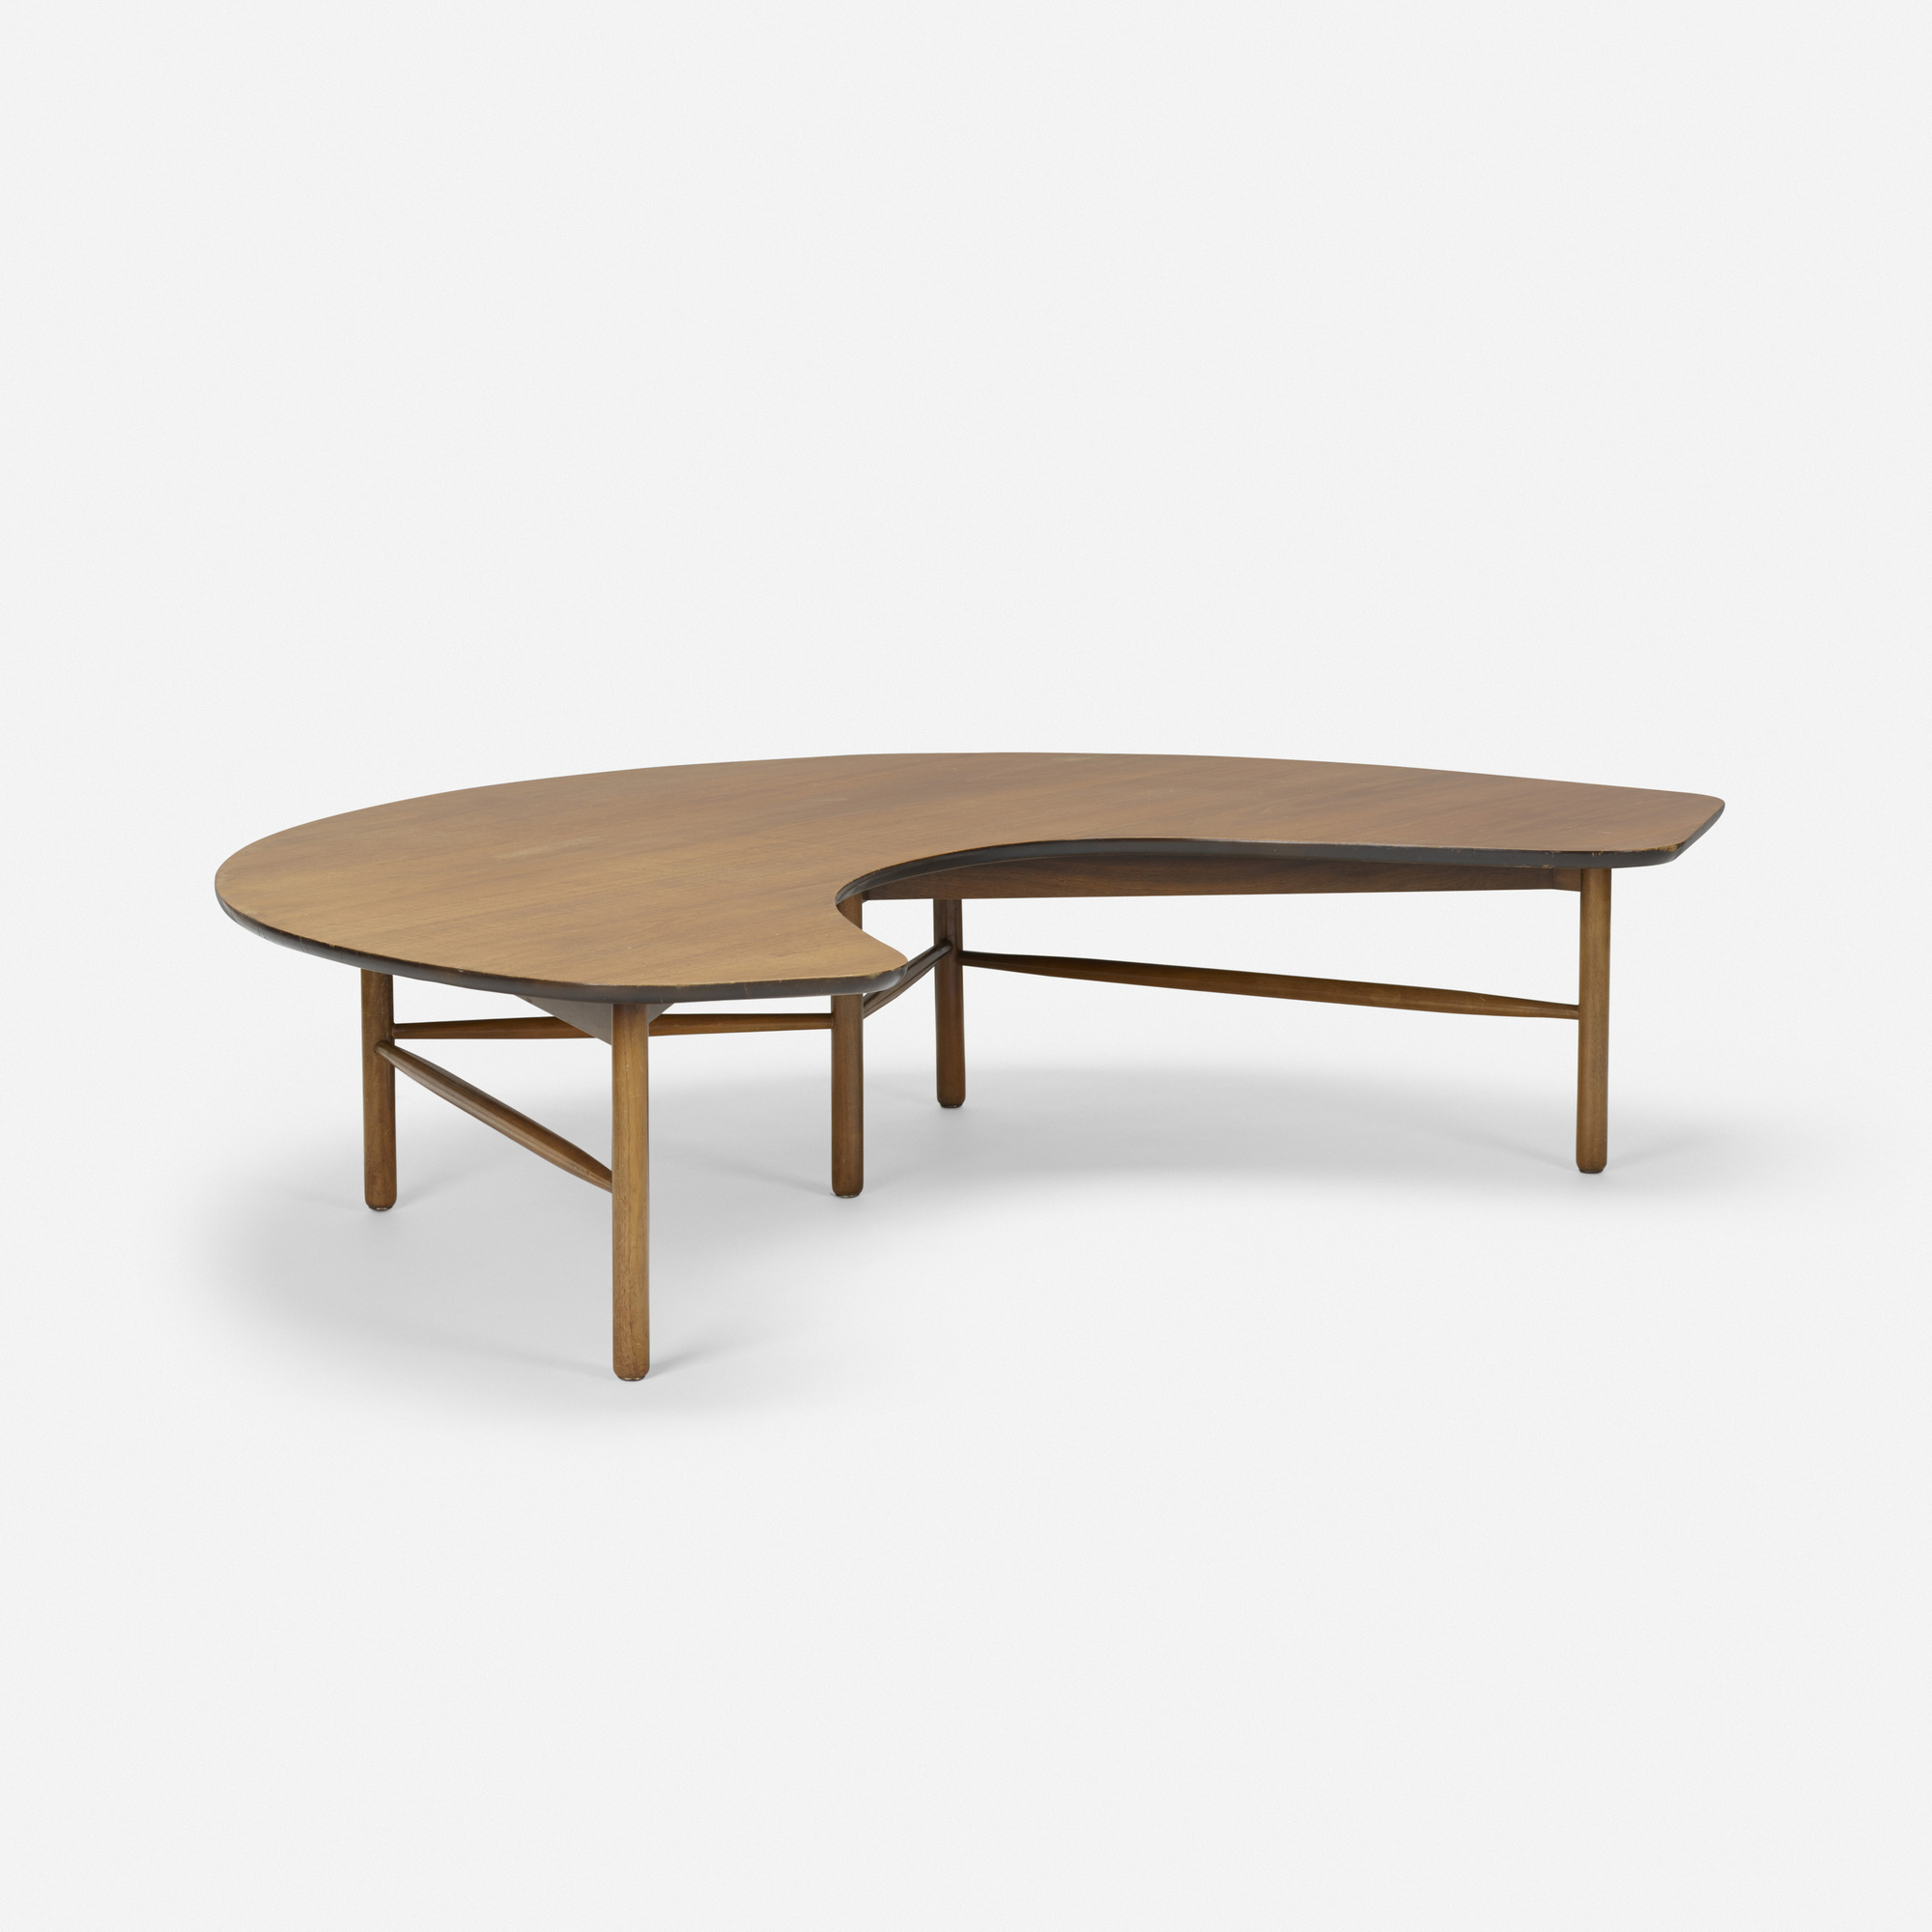 Super 199 Greta Magnusson Grossman Coffee Table American Gmtry Best Dining Table And Chair Ideas Images Gmtryco